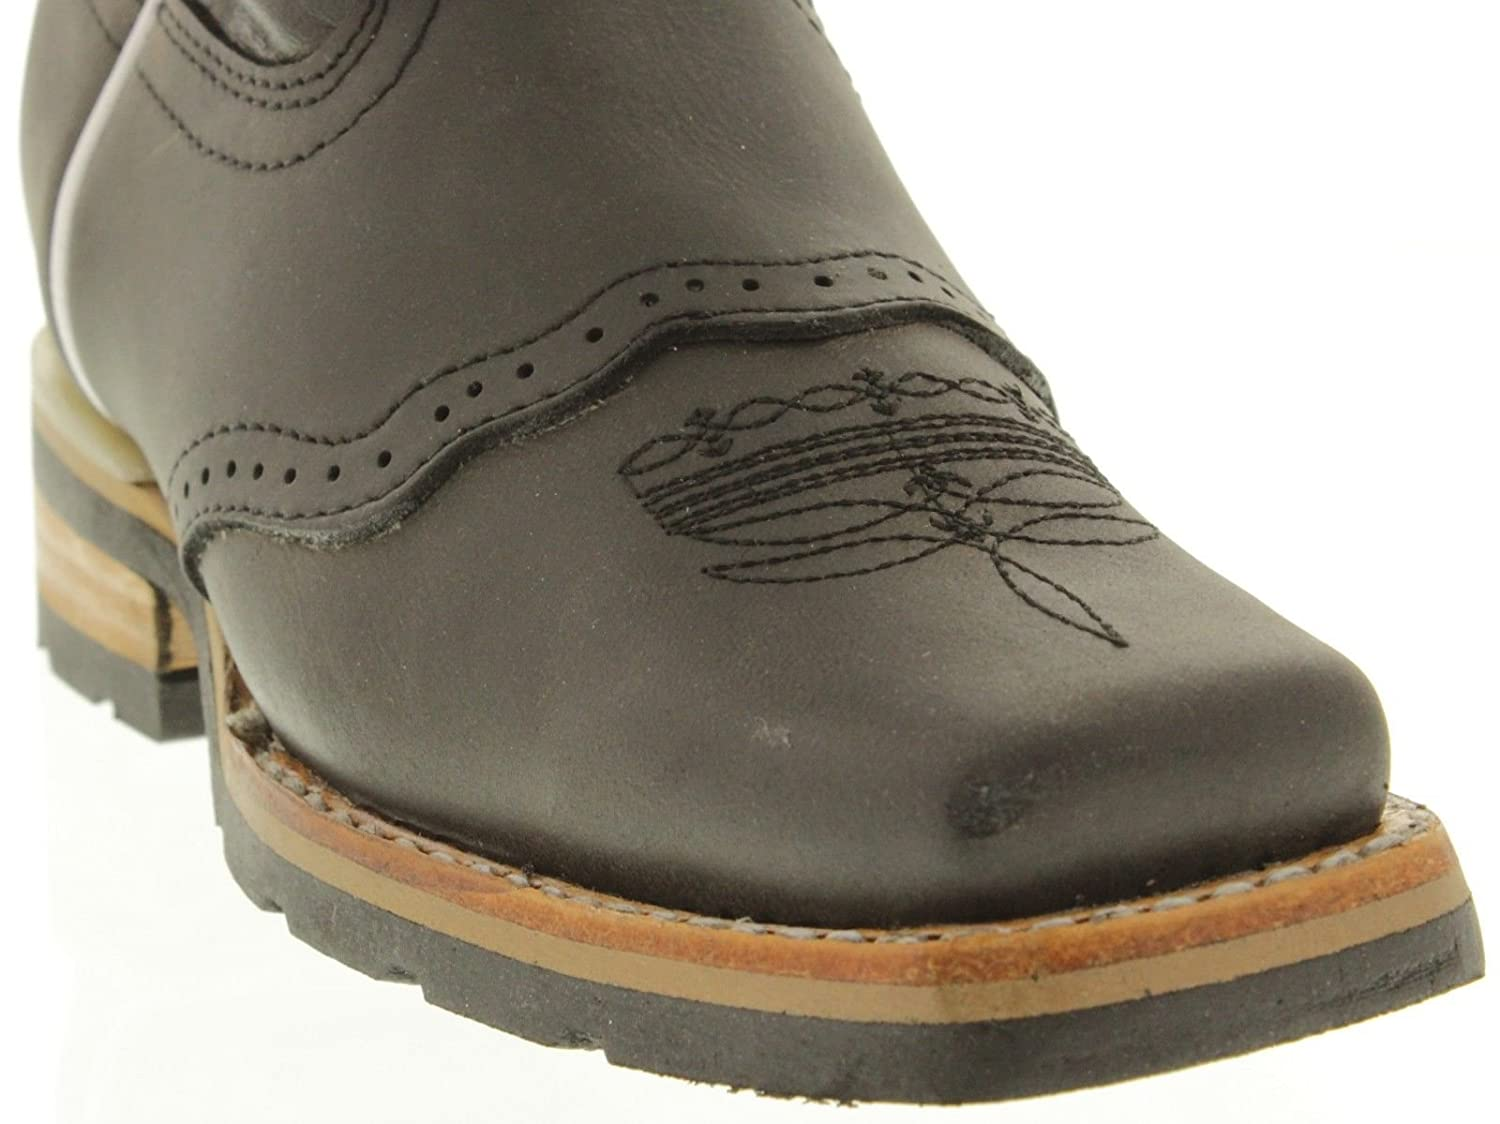 Kids Toddler Black Work Style Leather Cowboy Boots Square Toe Veretta Boots